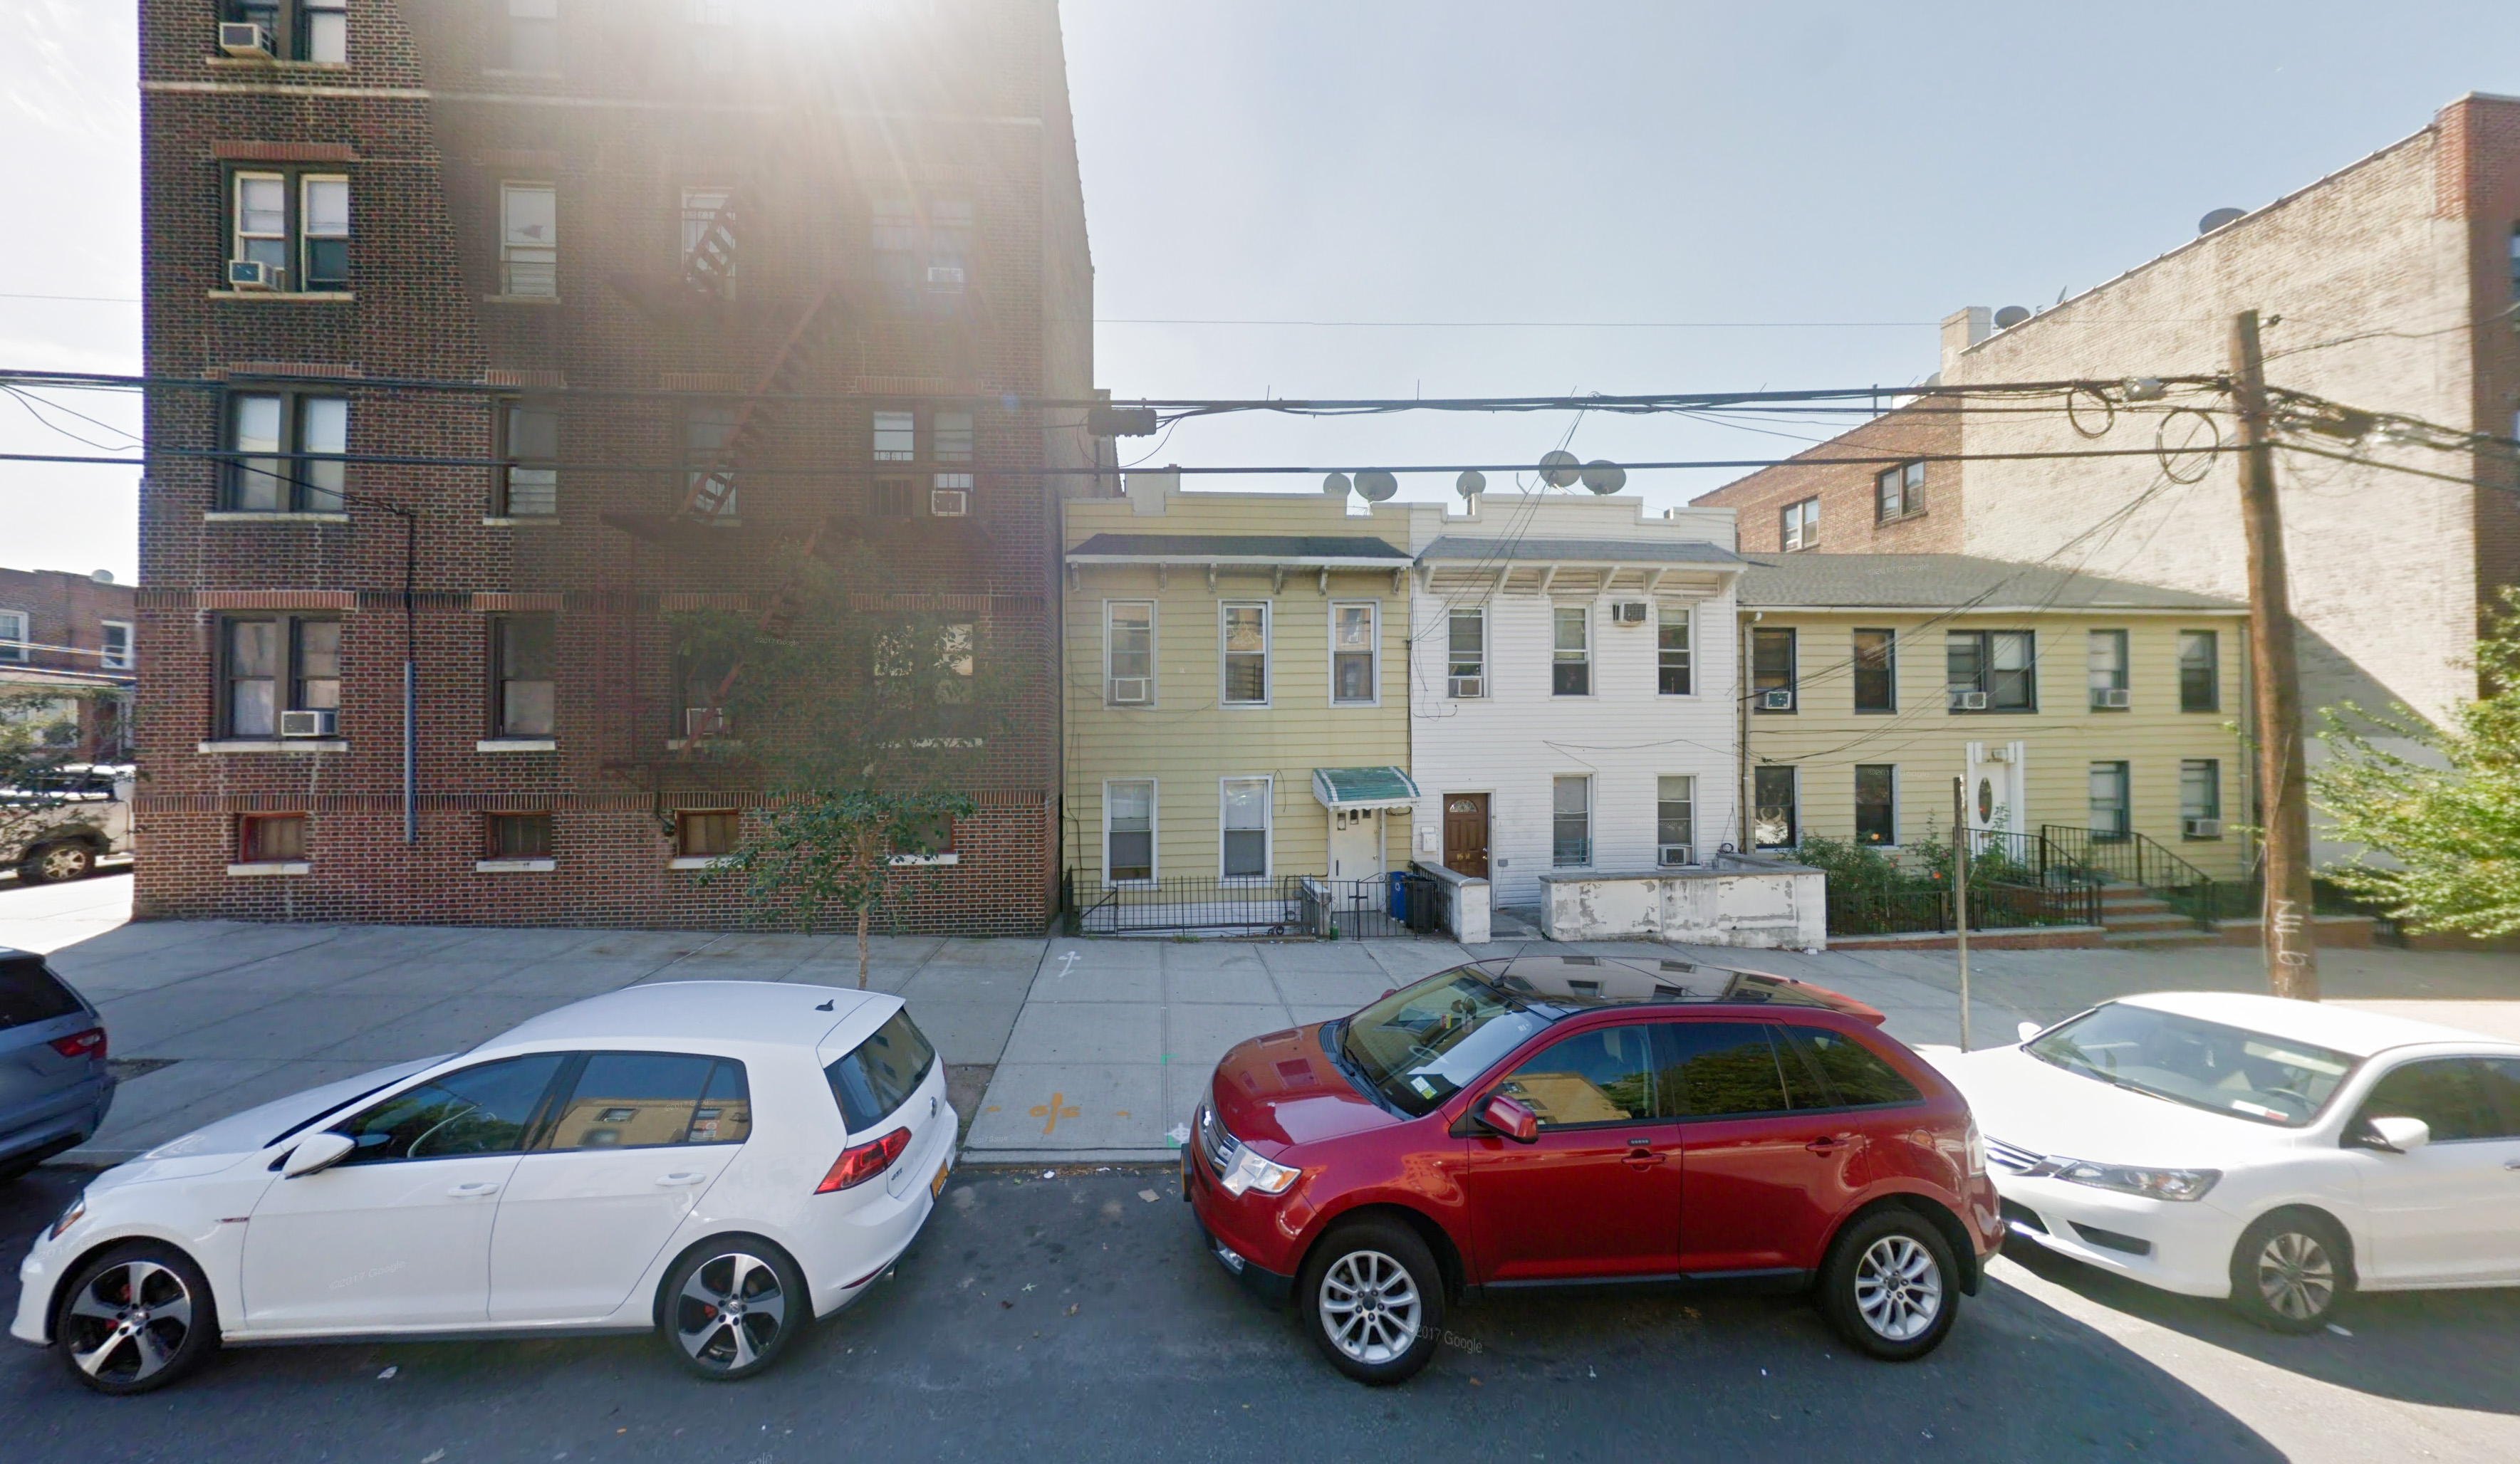 45-14 50th Street, via Google Maps